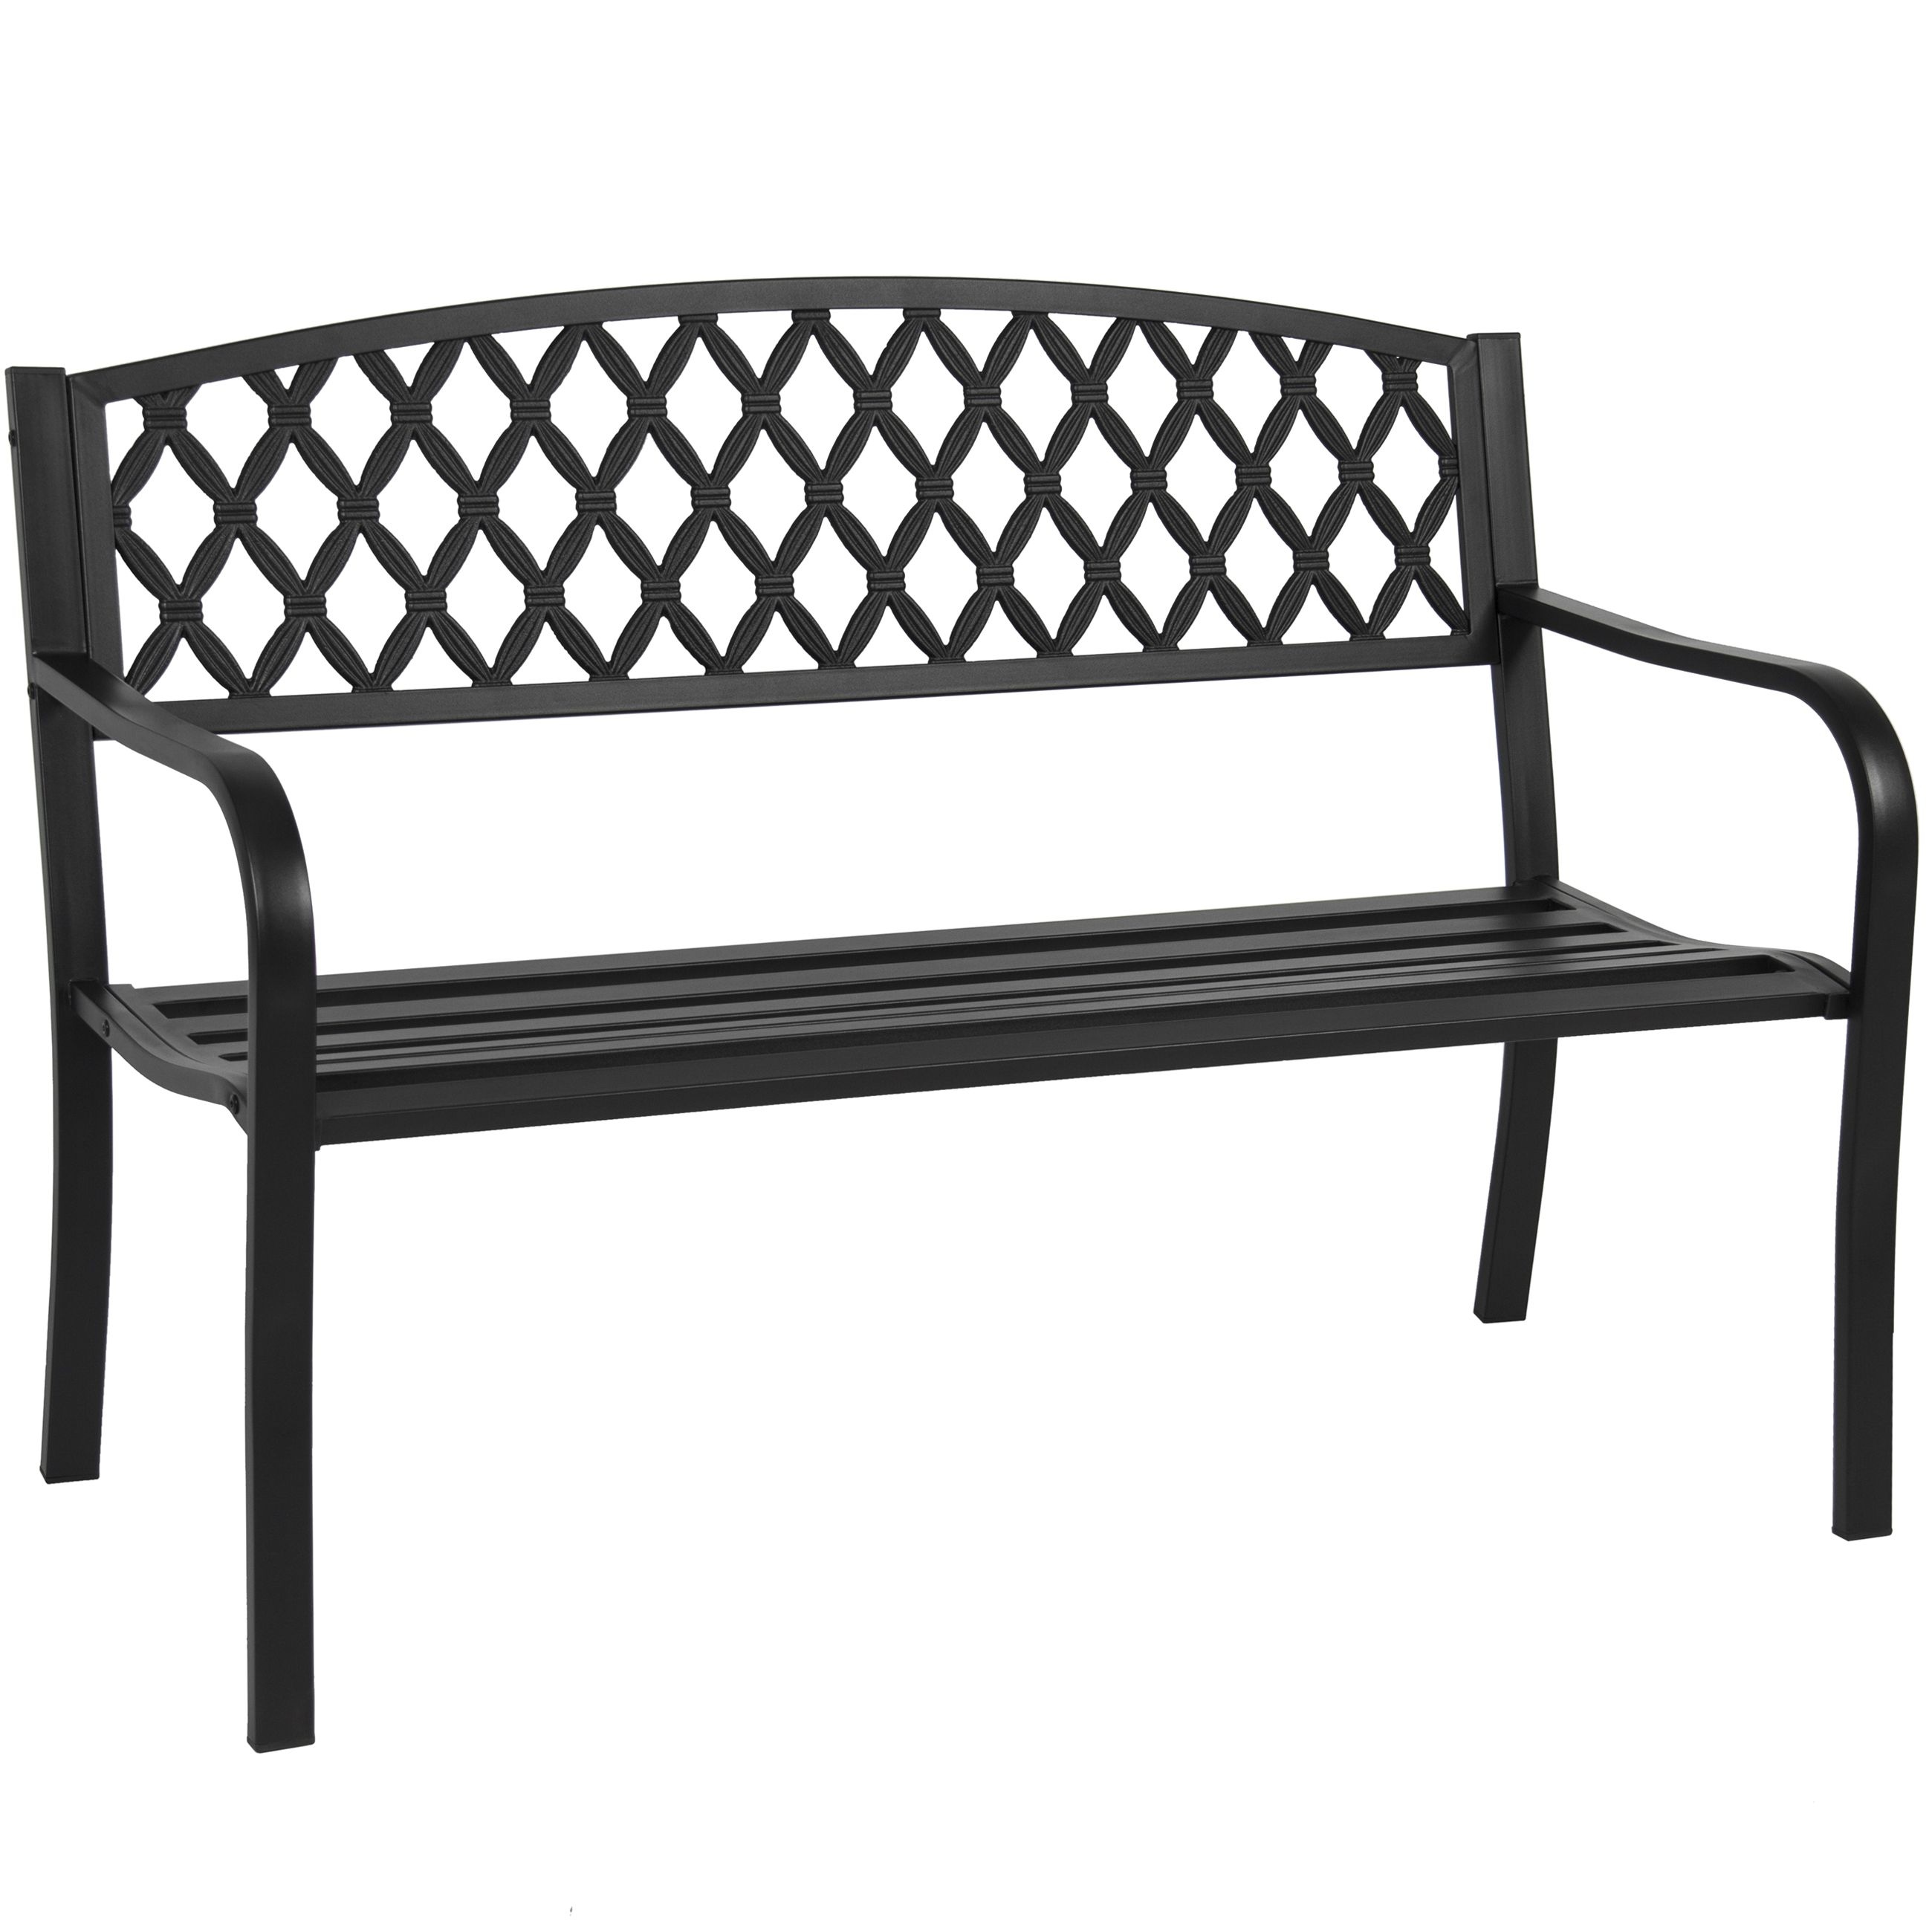 Patio Garden Metal Garden Benches Metal Patio Furniture